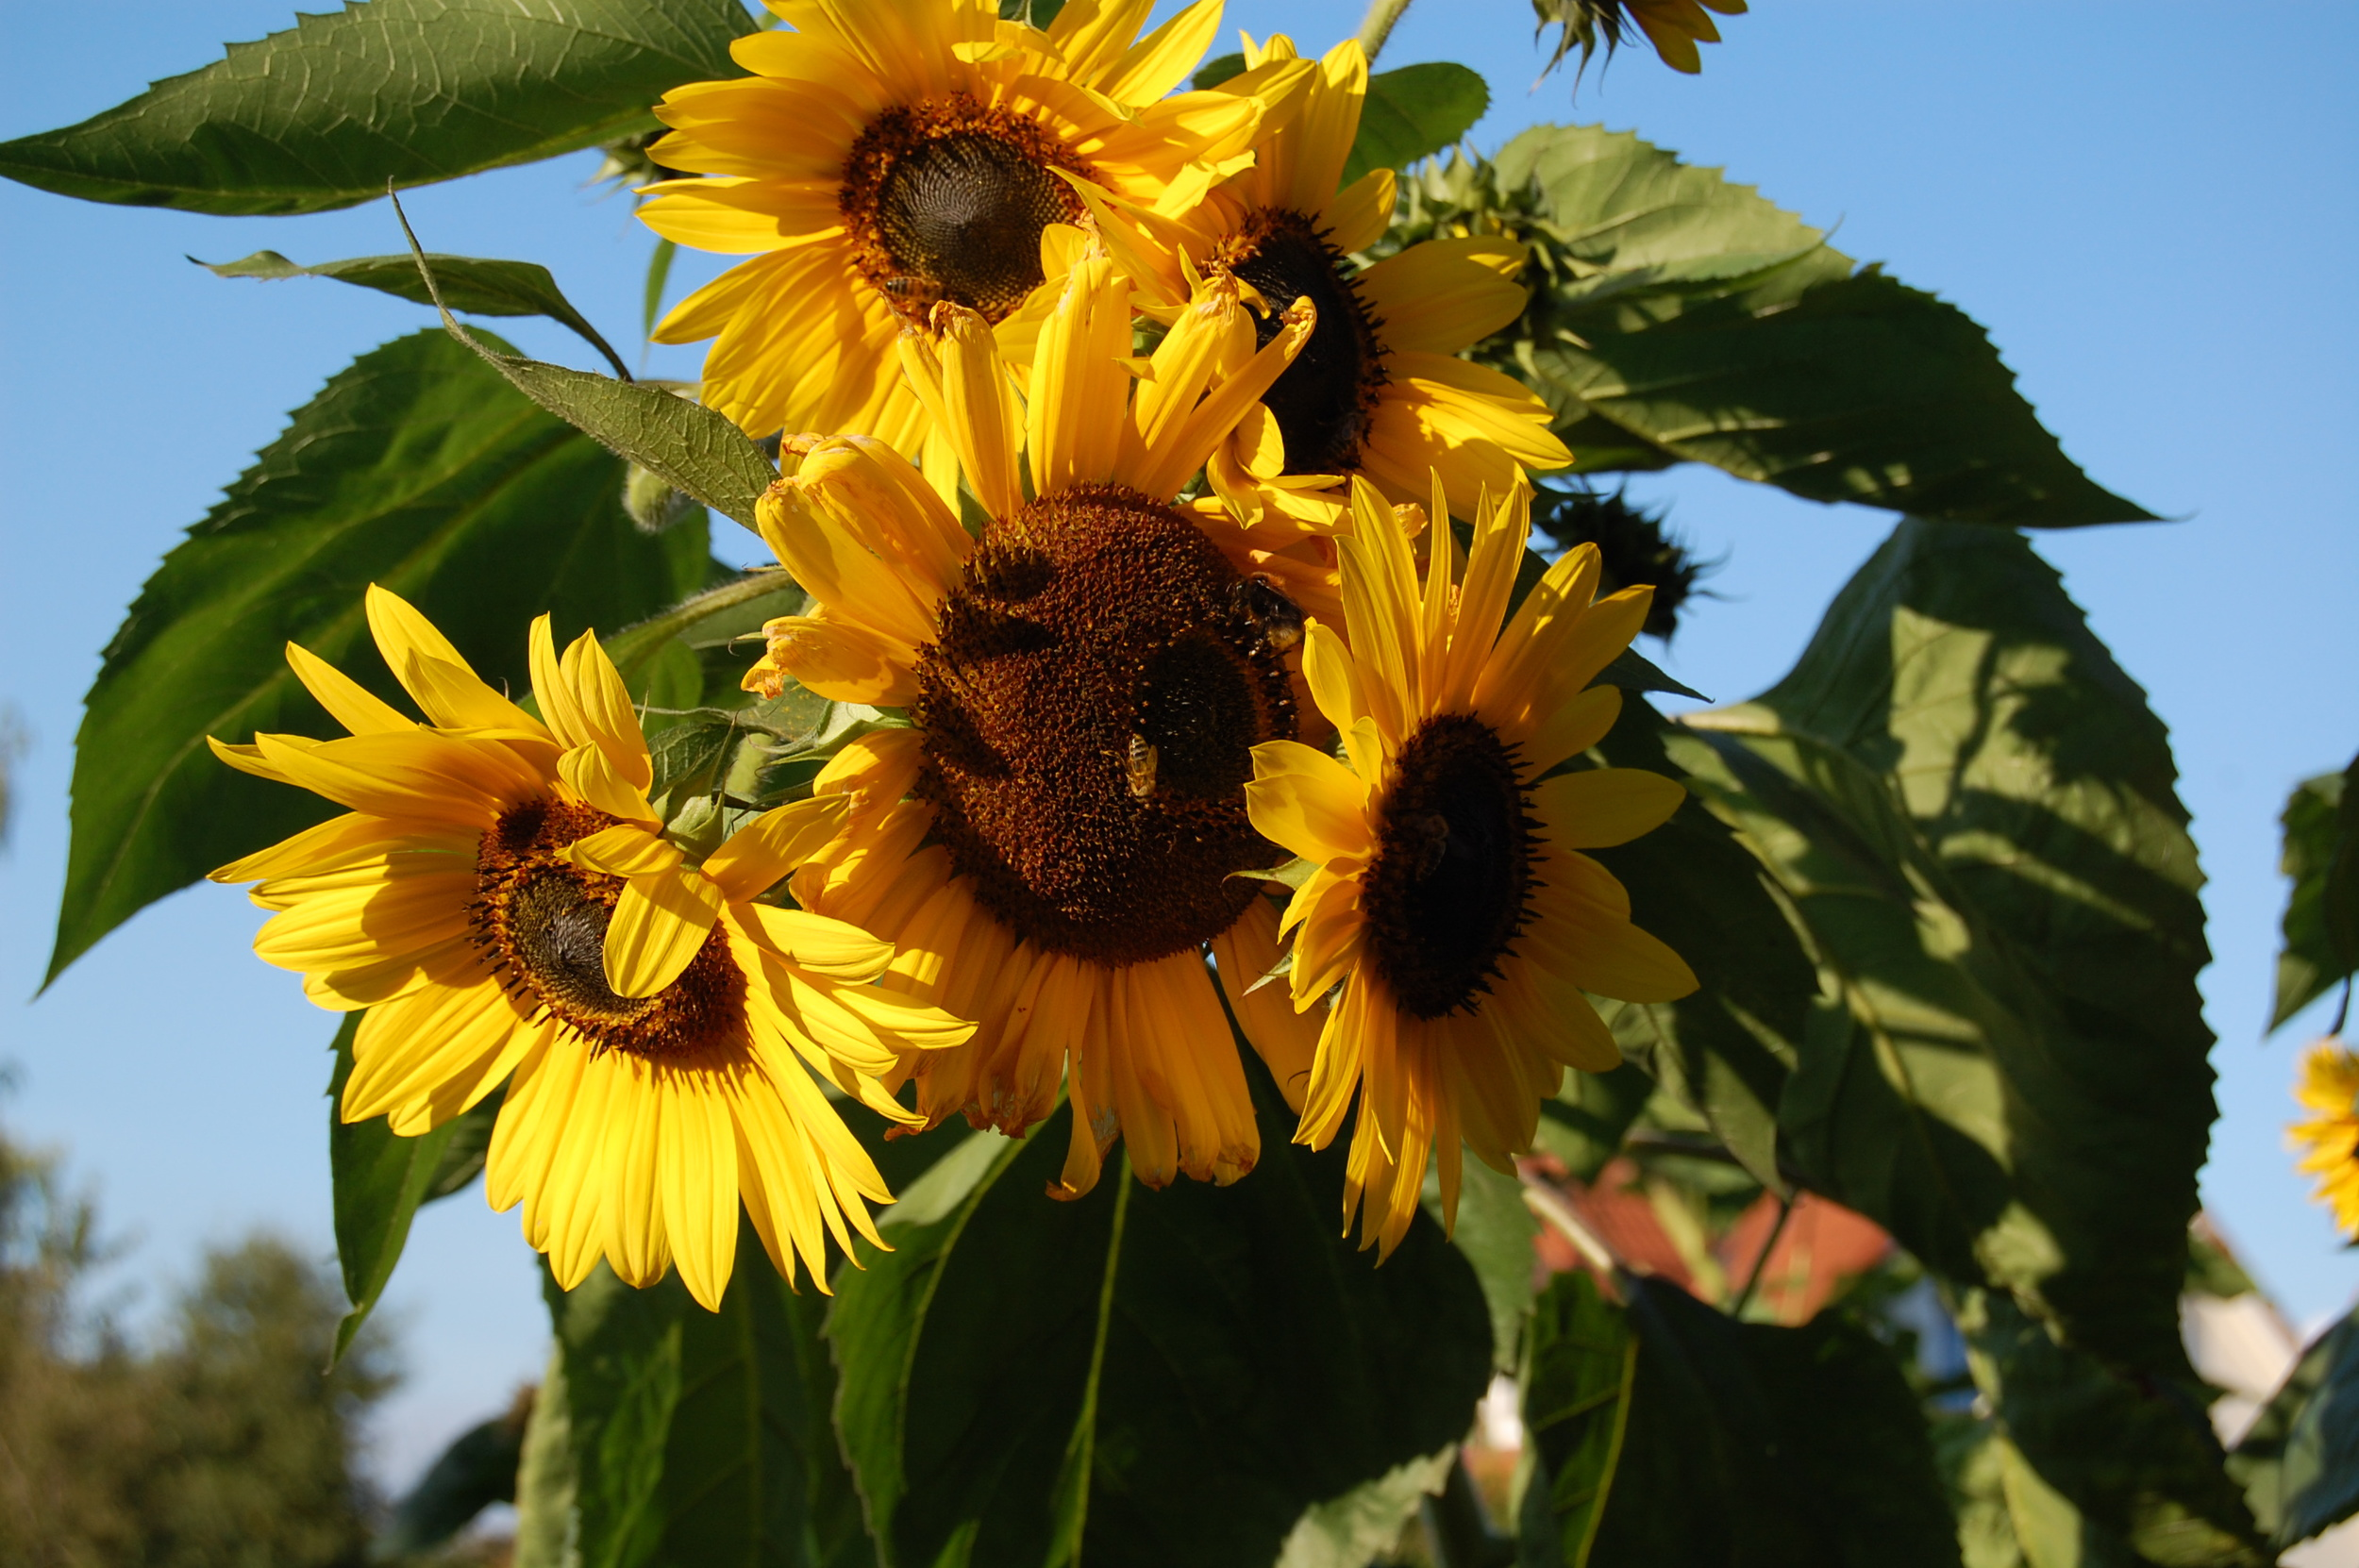 Sunflowers buzzing with bees in the gardens across the street.